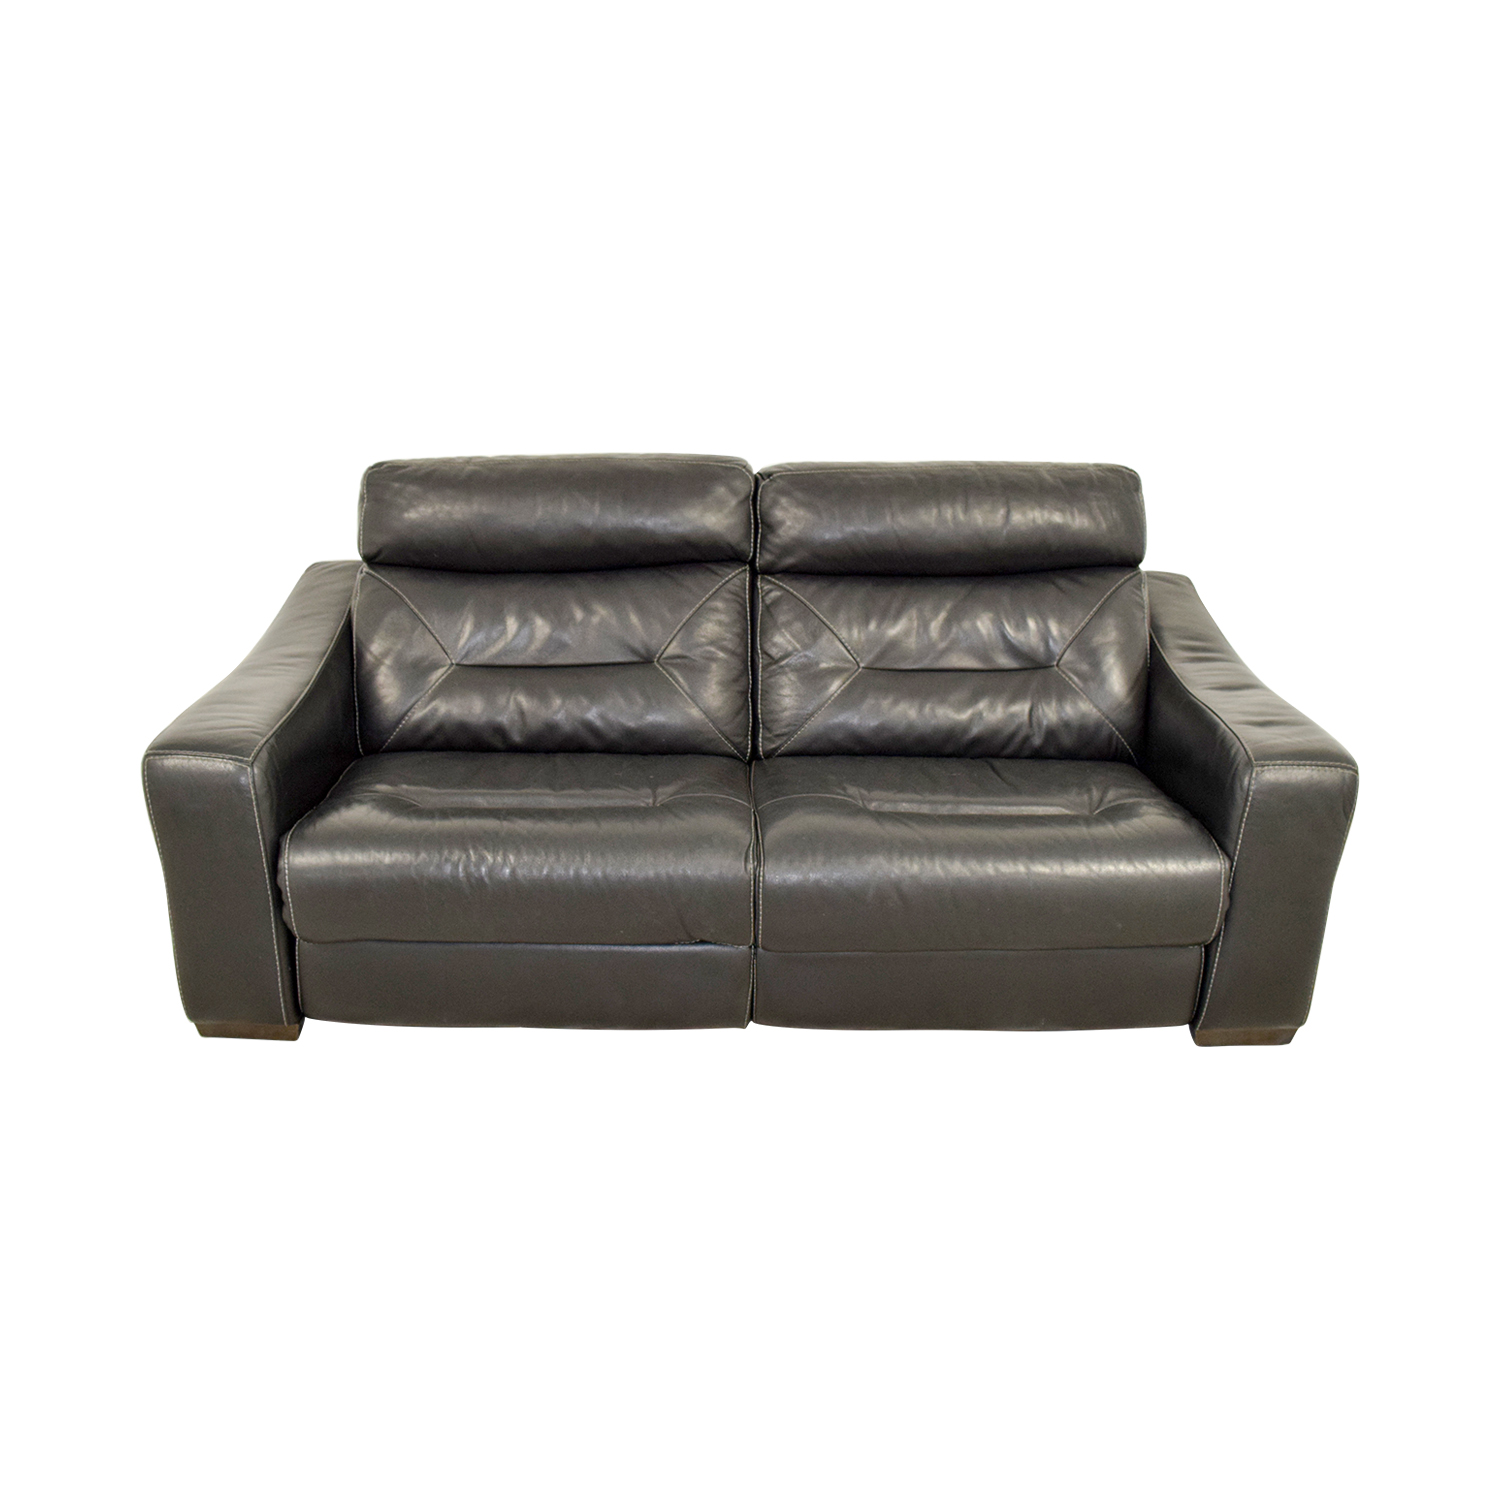 Macyu0027s Macyu0027s Black Leather Recliner Sofa used; Macyu0027s Black Leather Recliner Sofa Macyu0027s ...  sc 1 st  Furnishare & 37% OFF - Macyu0027s Macyu0027s Black Leather Recliner Sofa / Chairs islam-shia.org